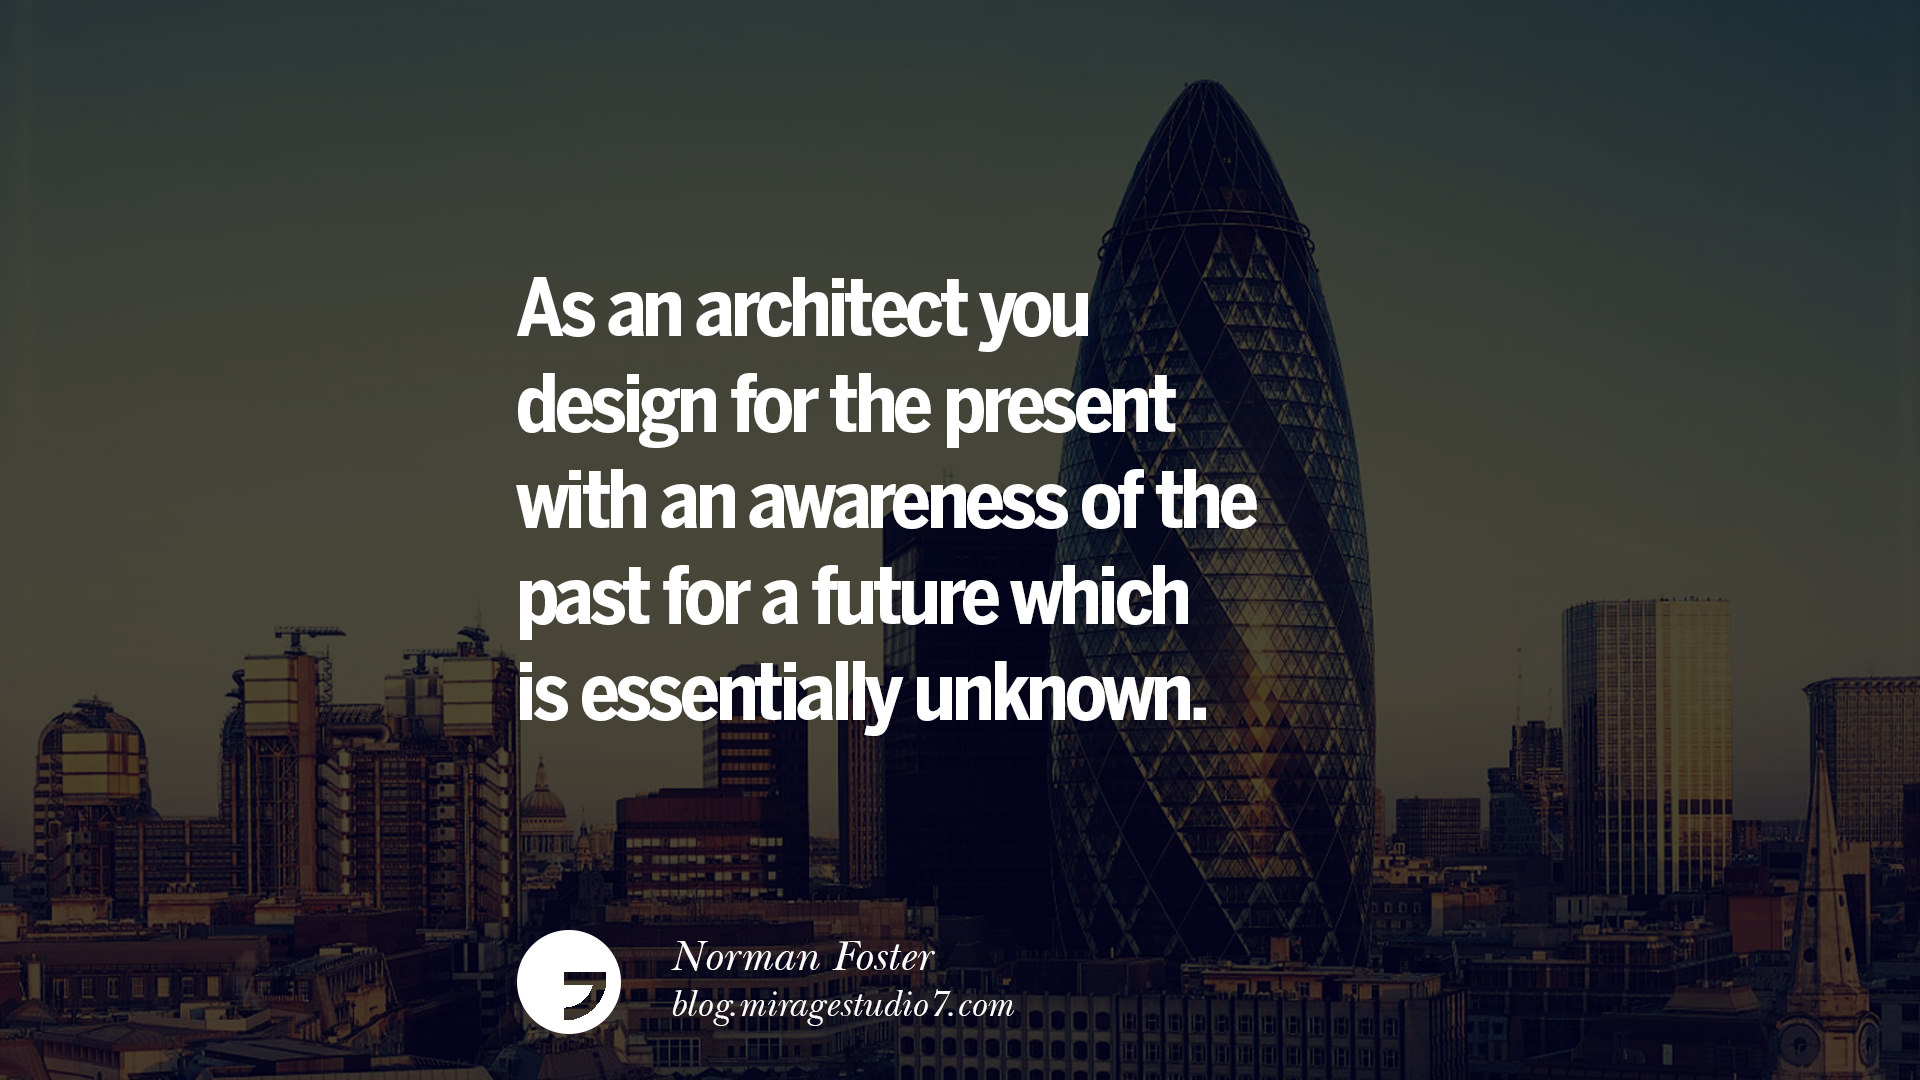 architecture quotes architect architects famous future interior inspirational past foster present norman designers unknown awareness which instagram landscape linkedin